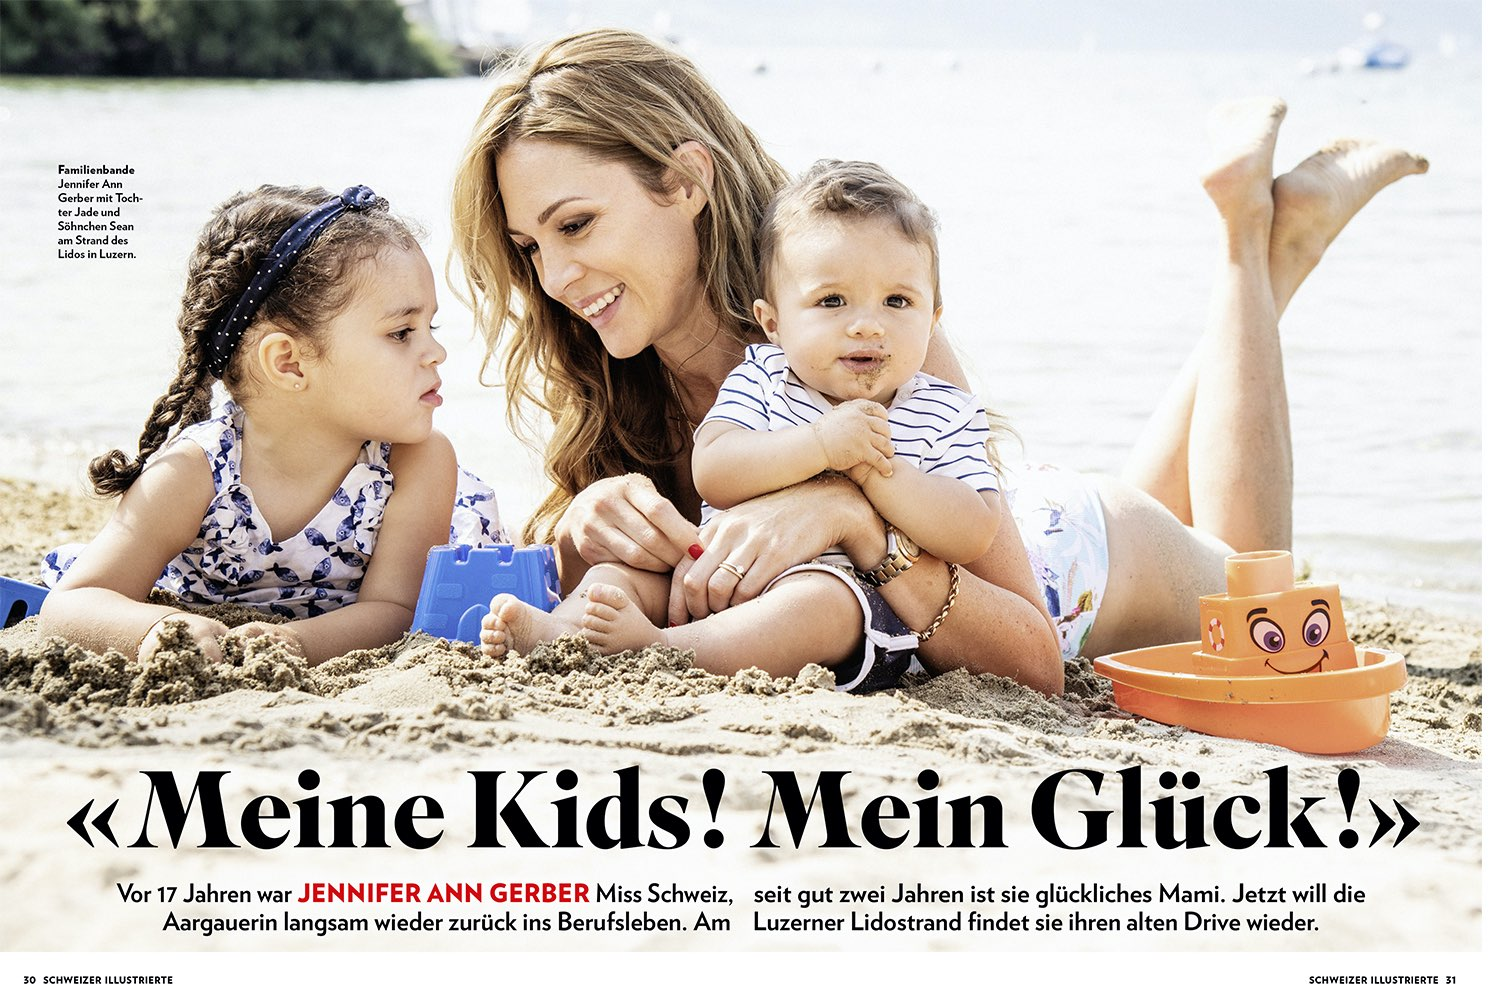 Hair, Nail, Make-up und Fashion styling portfolio / letizia-abbatiello - meine-kids--mein-gl--ck---ID559-1.jpeg?v=1585742558